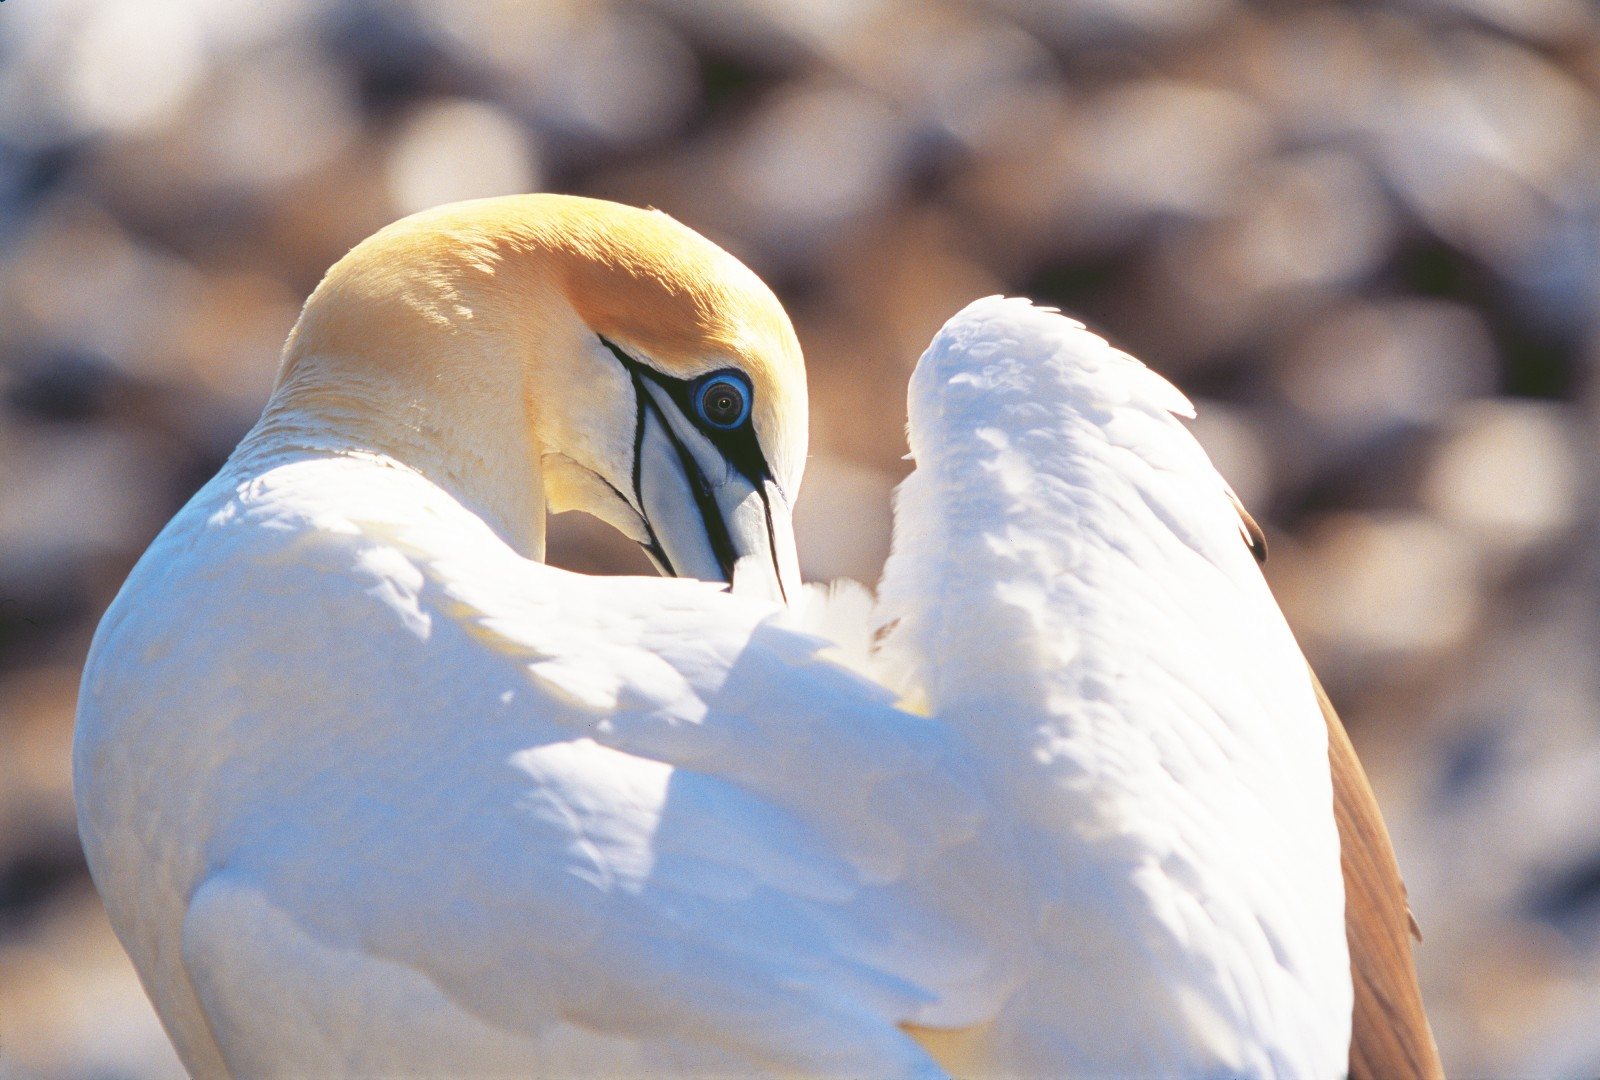 Keeping feathers in tiptop condition matters more for a gannet than for most birds. Not only do they fly scores or even hundreds of kilometers in a day, but they need to stay dry through dozens of high-impact dives as well. Few, if any, other birds dive from 30 metres up or hit the water as hard.